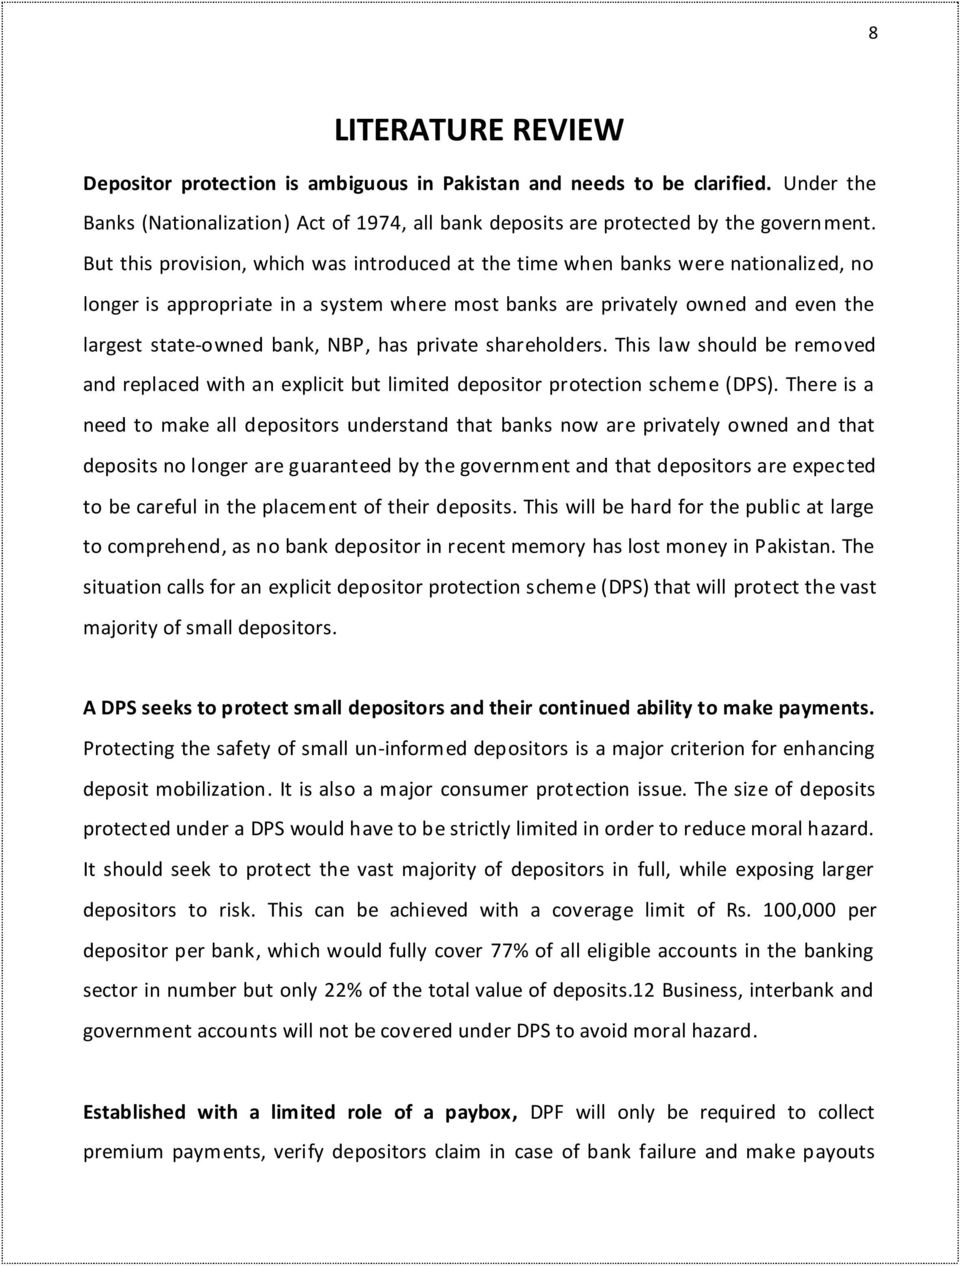 NBP, has private shareholders. This law should be removed and replaced with an explicit but limited depositor protection scheme (DPS).